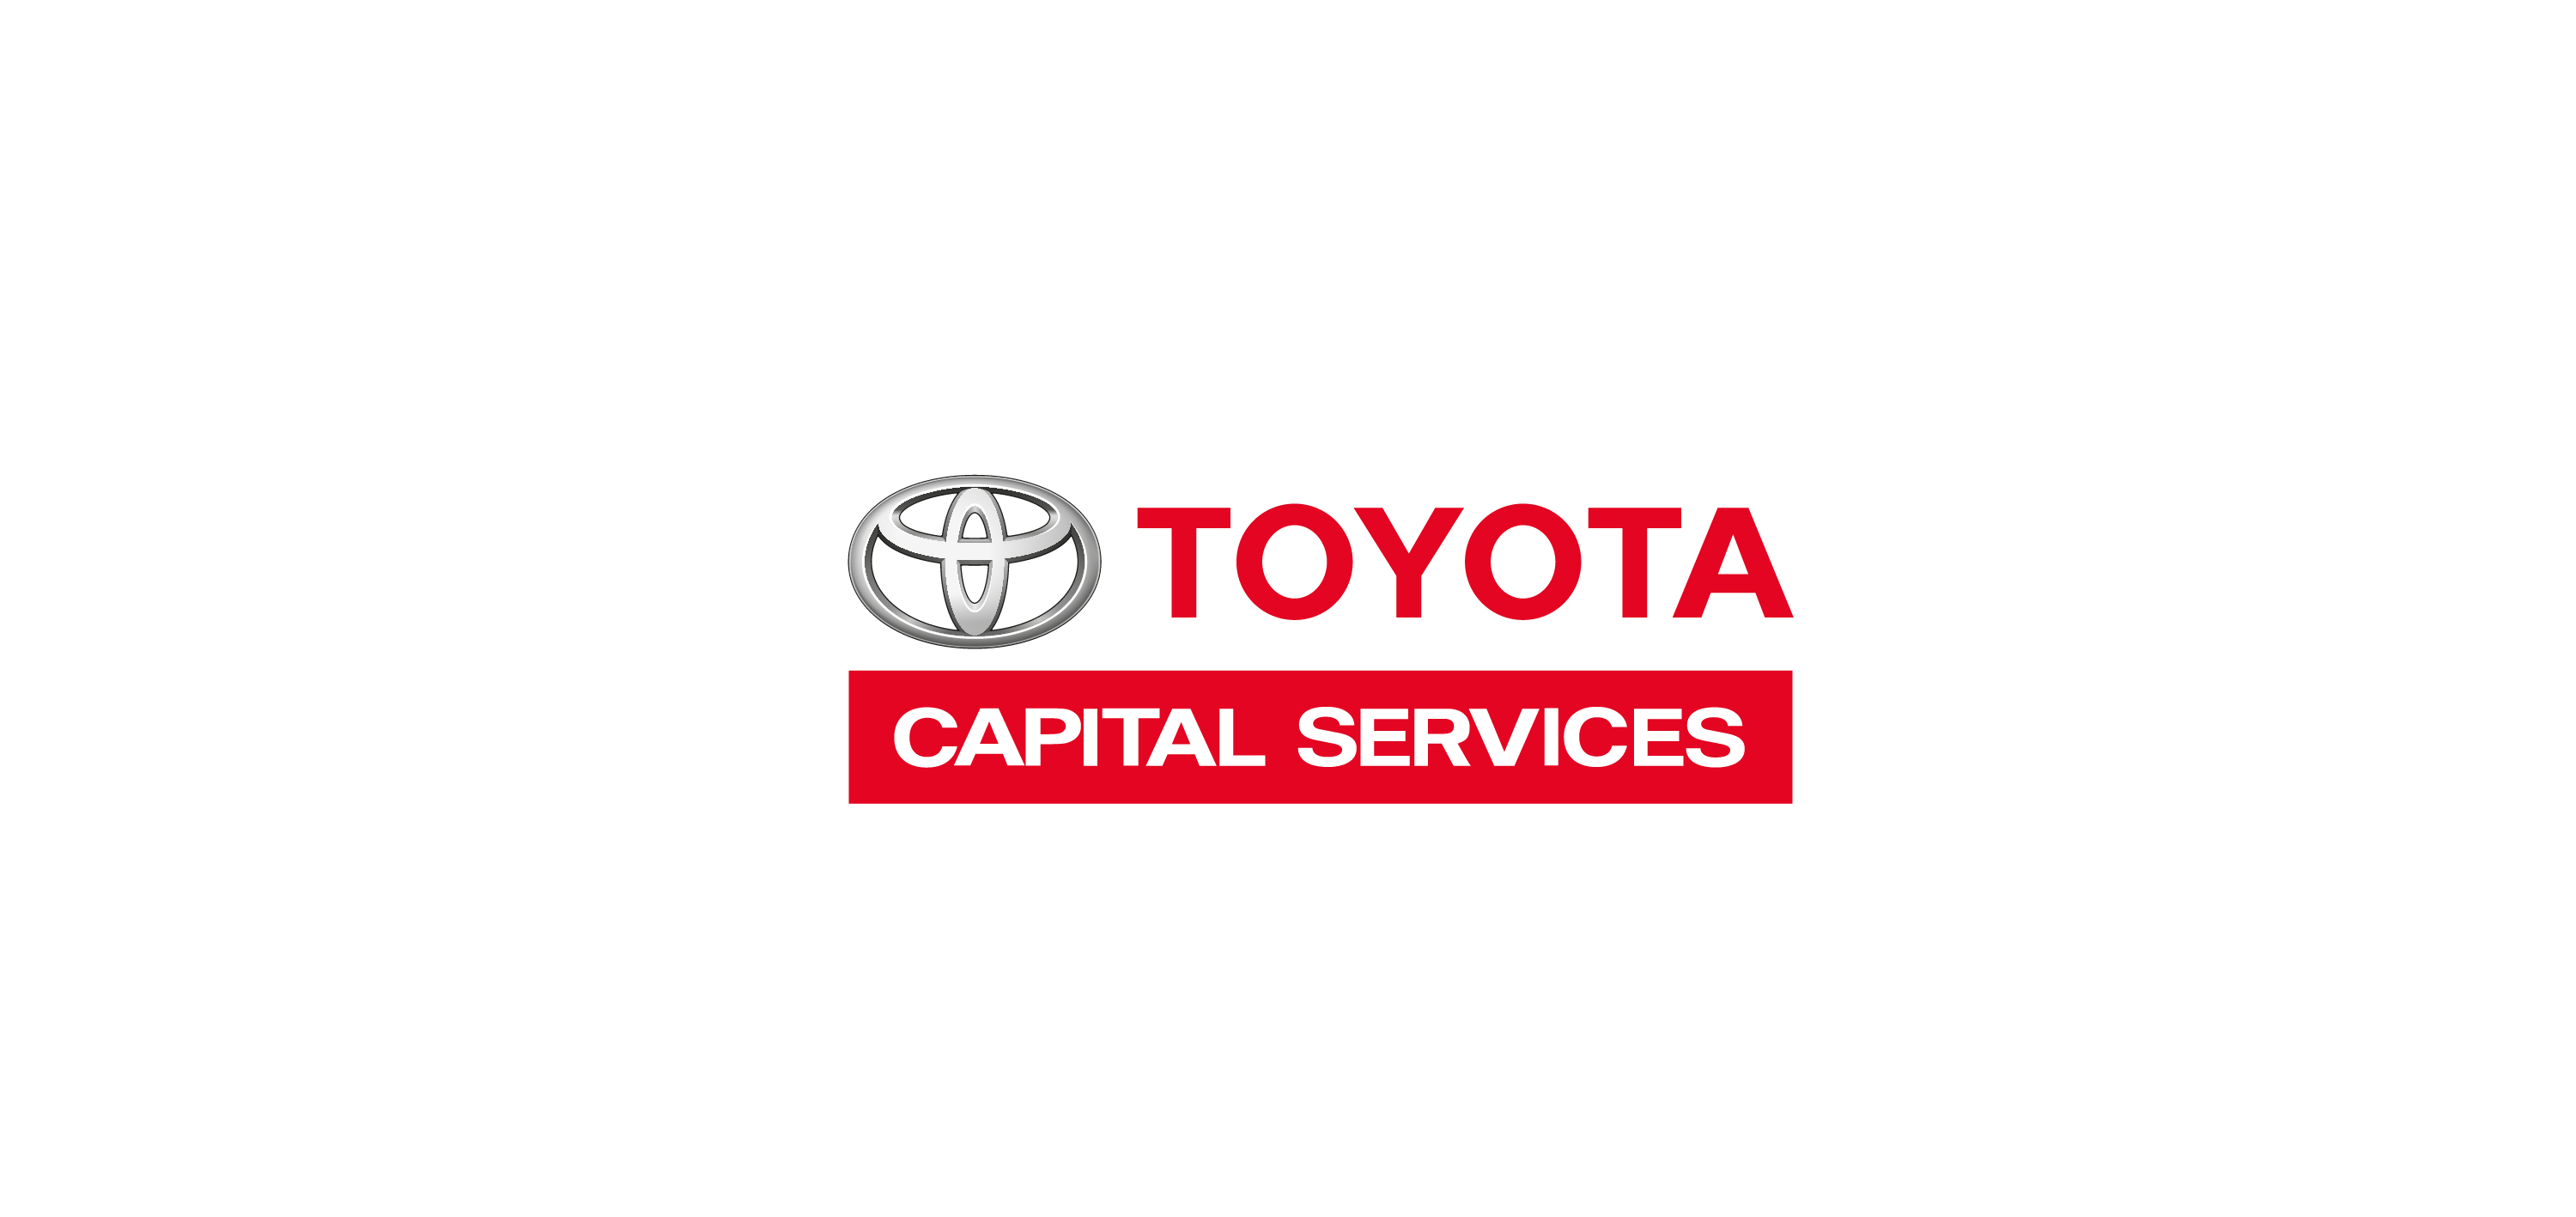 toyota capital services logo